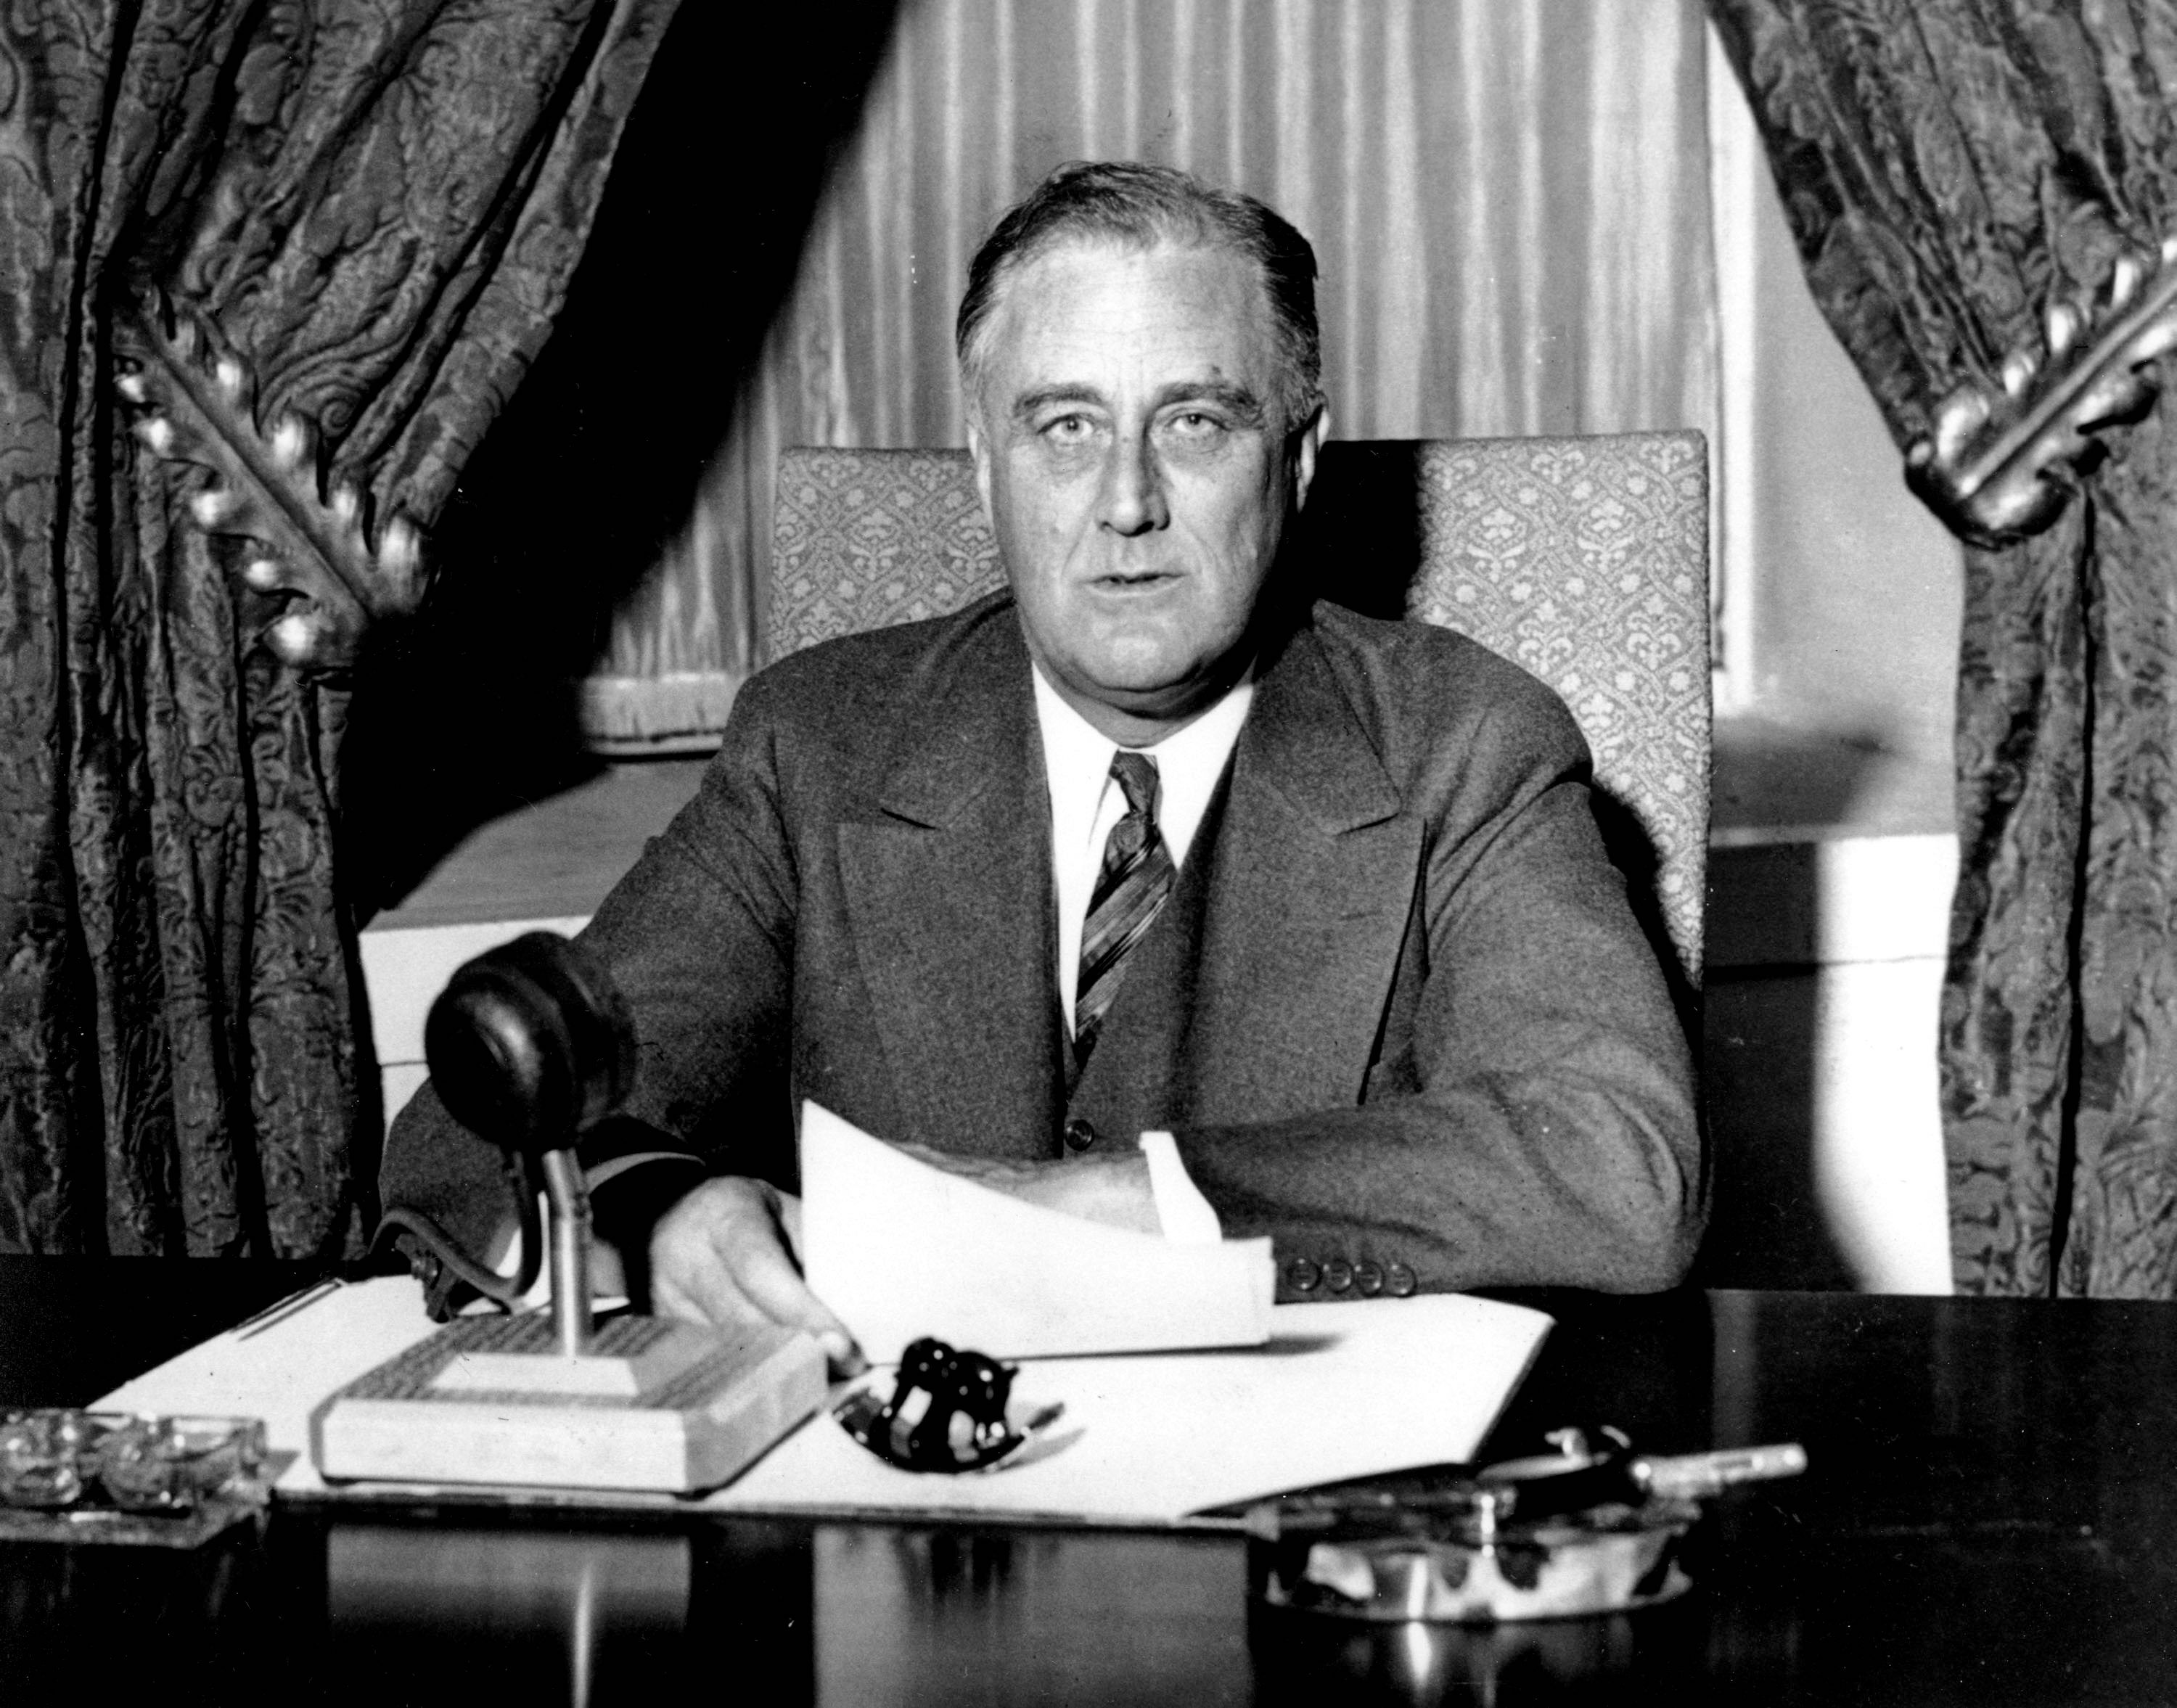 fdr essay herbert hoover on the great depression and new deal in  dibacco obama and fdr a comparison washington times